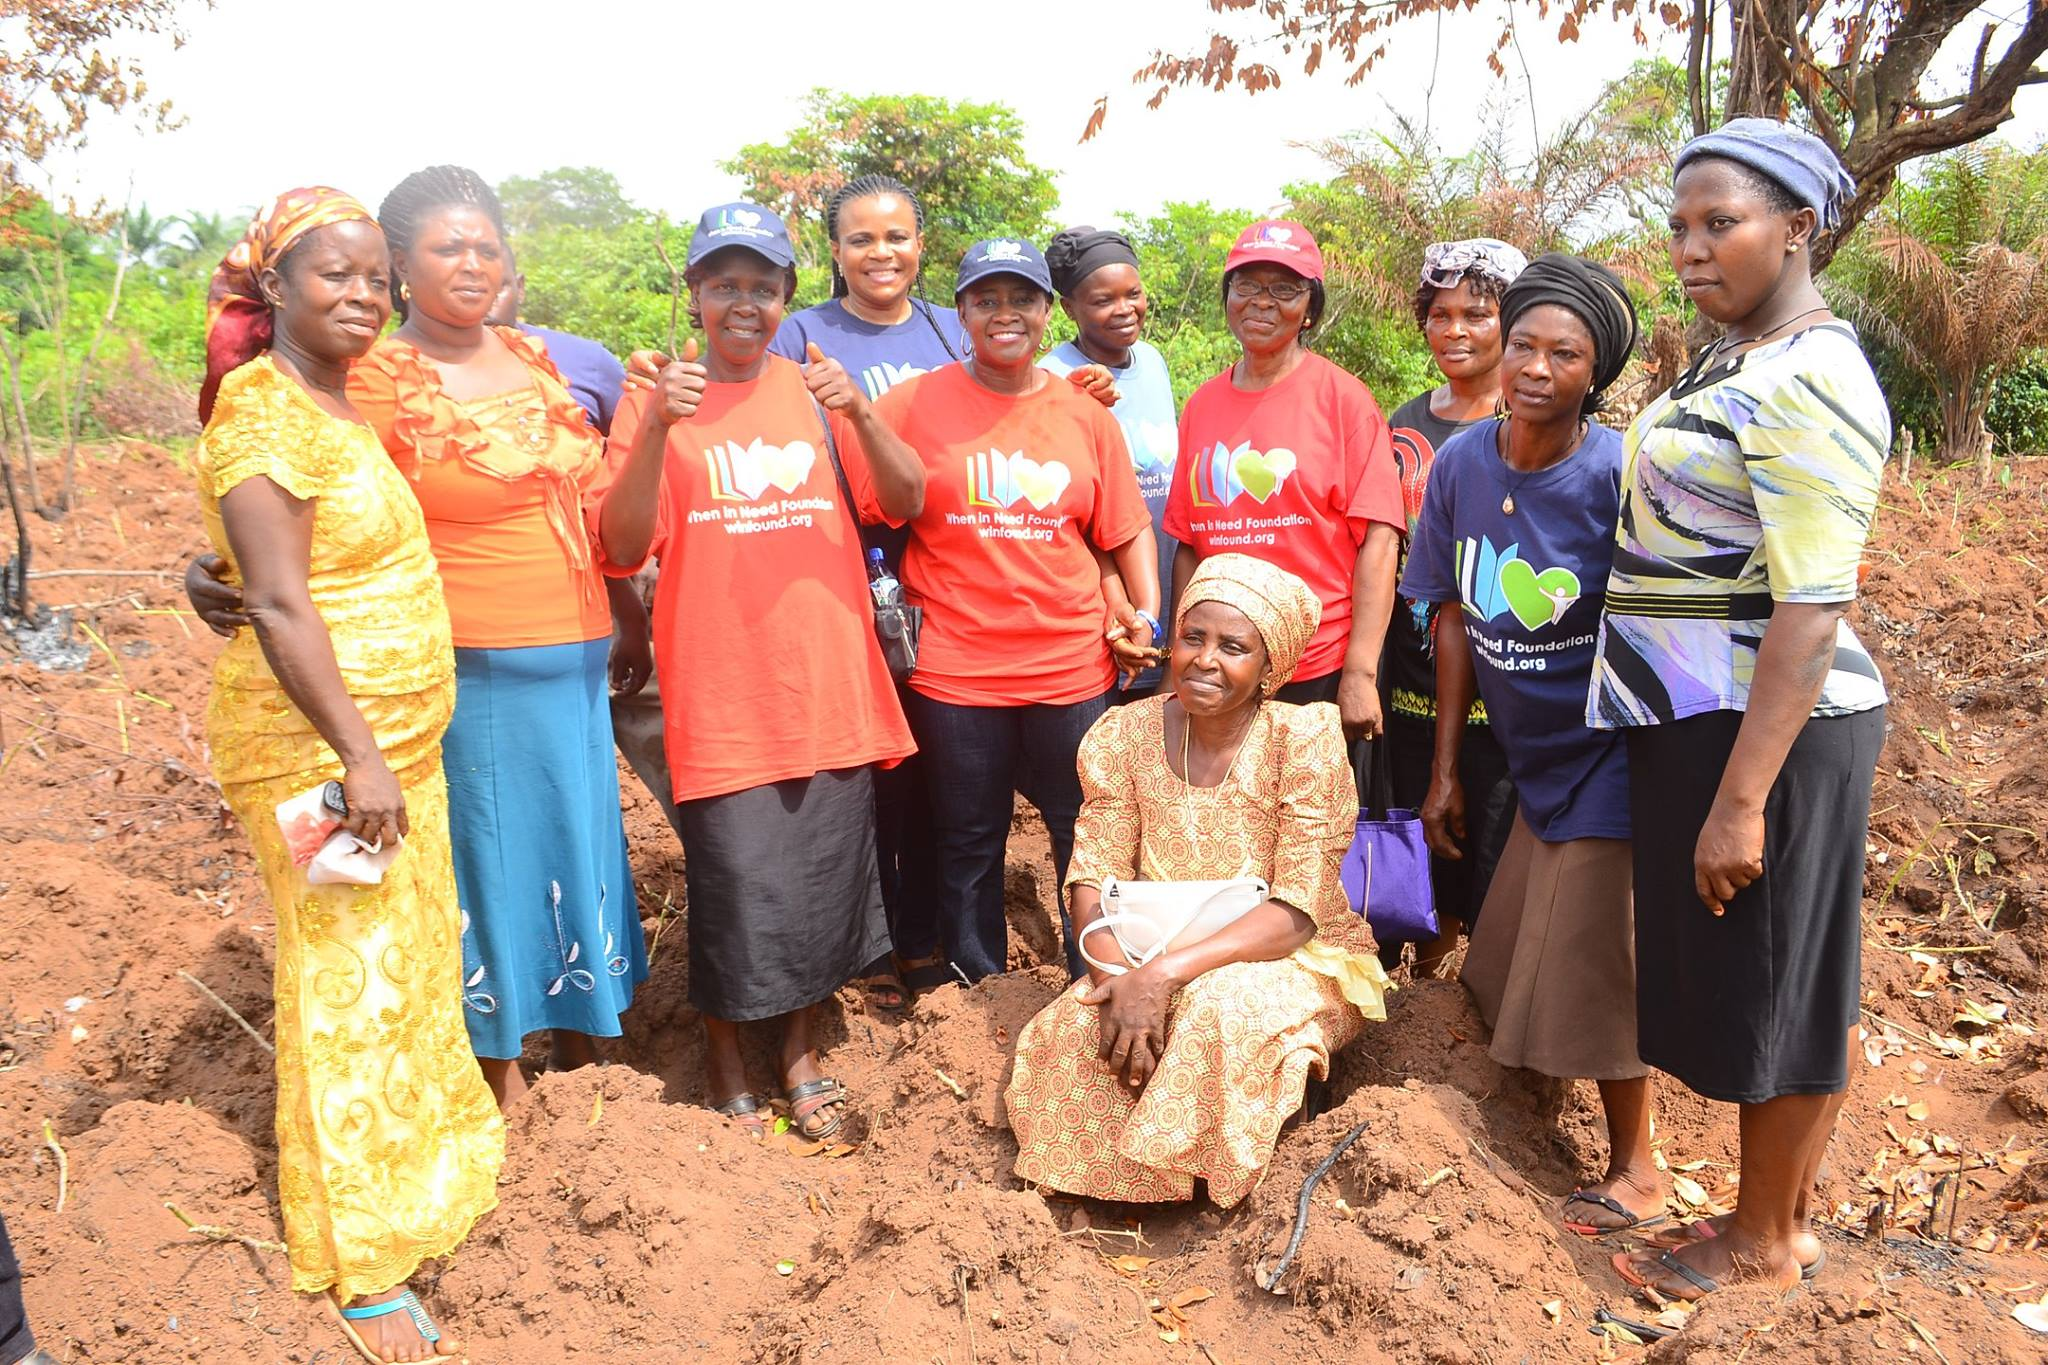 2. Agric Farm Project promoting sustainable development   and employment among women and local farmers